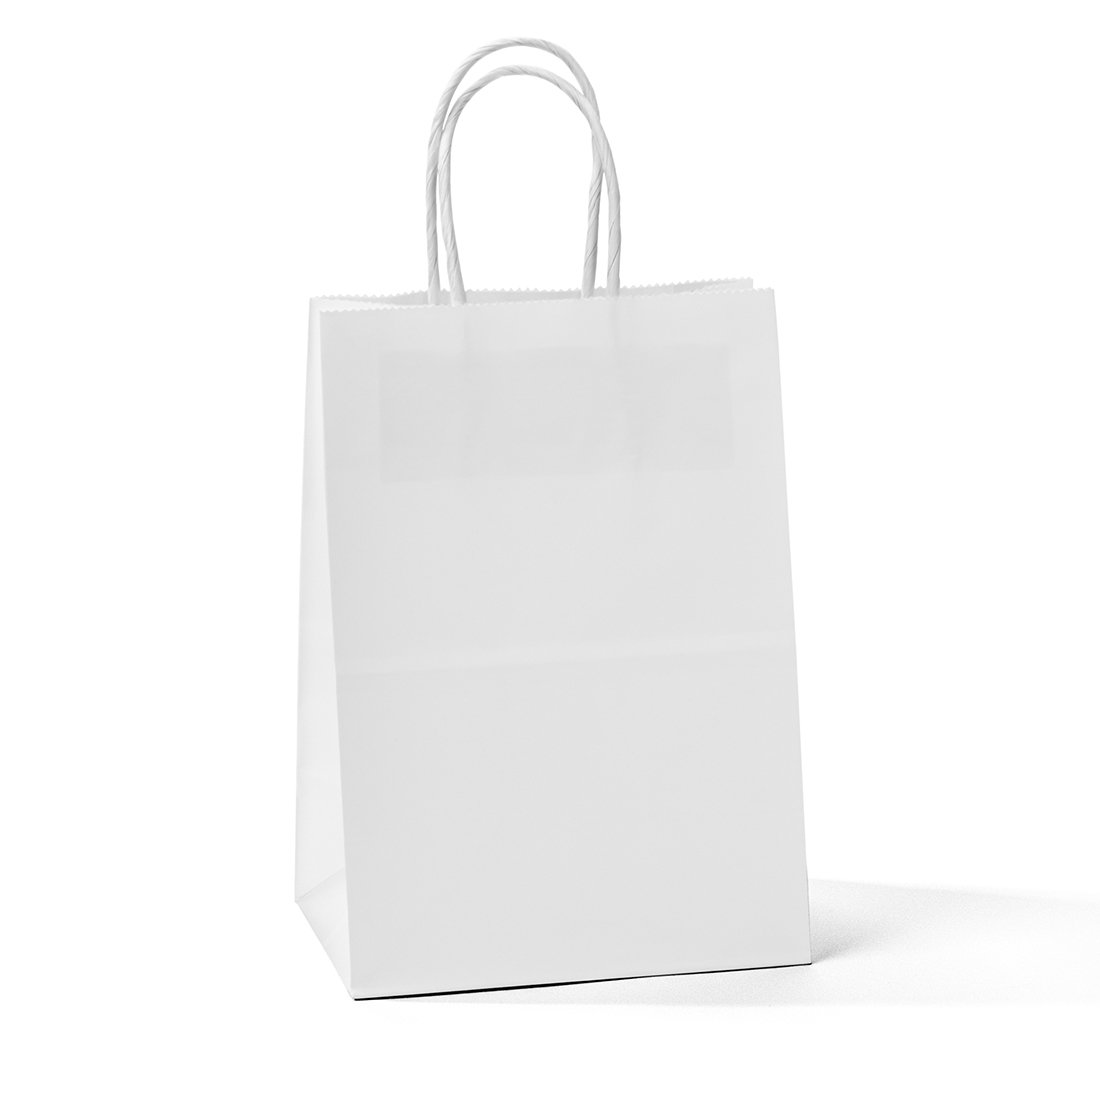 Halulu Kraft White Paper Bags - Gift Bags with Handles - 25pc 5x3.75x8 Shopping Bags